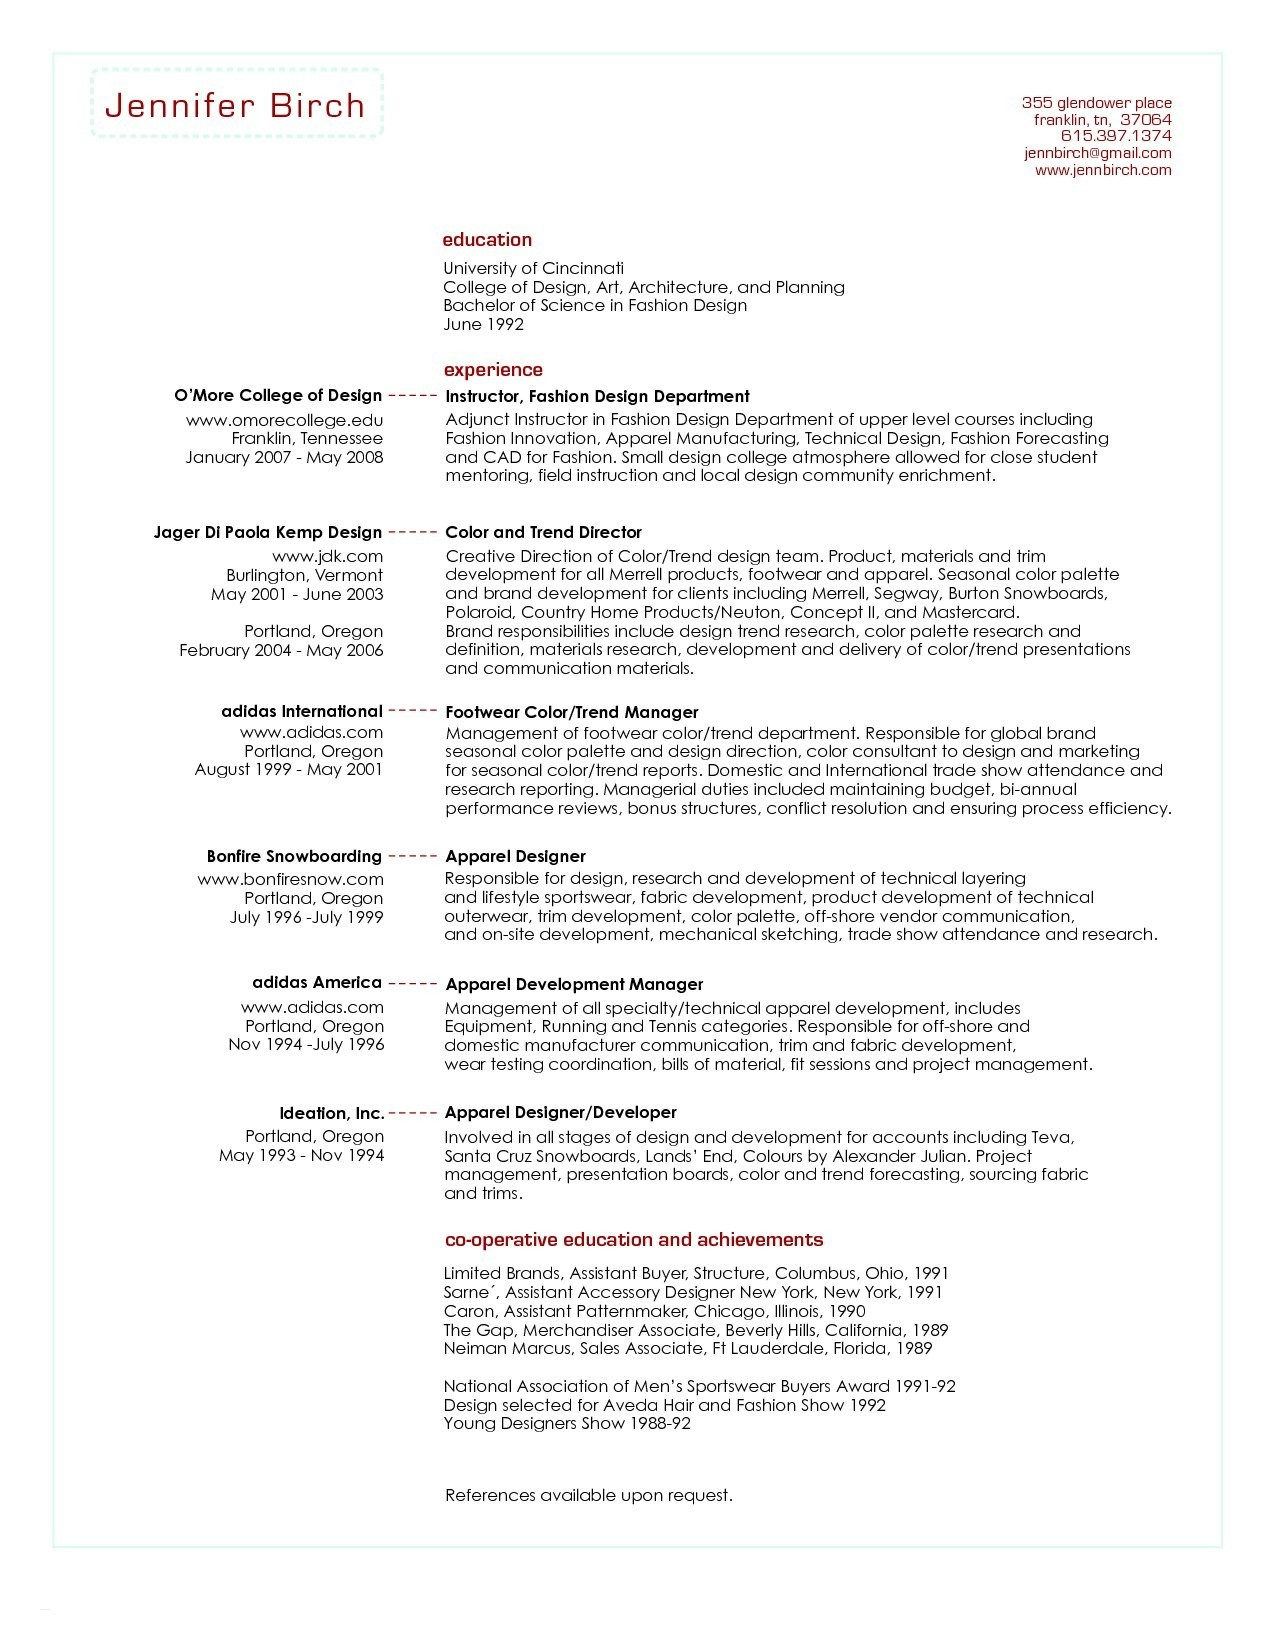 Sales Experience Resume - Sample Sales Management Resume New Retail Store Manager Resume Best